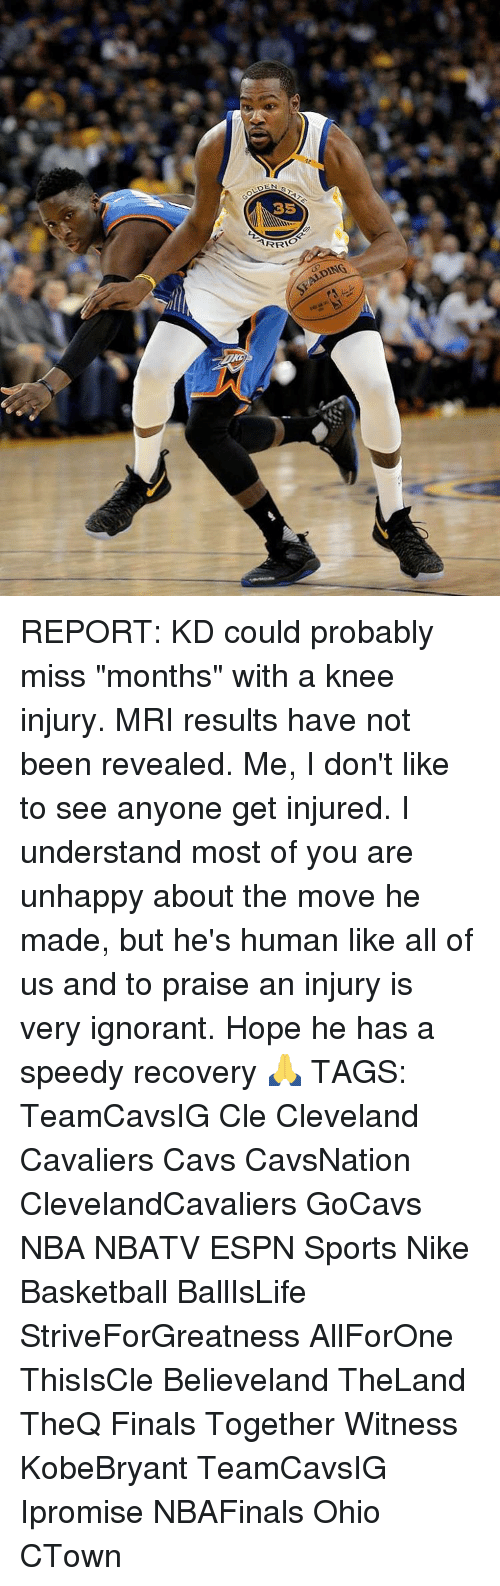 """mri: DEN  35  ARRI  SKALDING REPORT: KD could probably miss """"months"""" with a knee injury. MRI results have not been revealed. Me, I don't like to see anyone get injured. I understand most of you are unhappy about the move he made, but he's human like all of us and to praise an injury is very ignorant. Hope he has a speedy recovery 🙏 TAGS: TeamCavsIG Cle Cleveland Cavaliers Cavs CavsNation ClevelandCavaliers GoCavs NBA NBATV ESPN Sports Nike Basketball BallIsLife StriveForGreatness AllForOne ThisIsCle Believeland TheLand TheQ Finals Together Witness KobeBryant TeamCavsIG Ipromise NBAFinals Ohio CTown"""